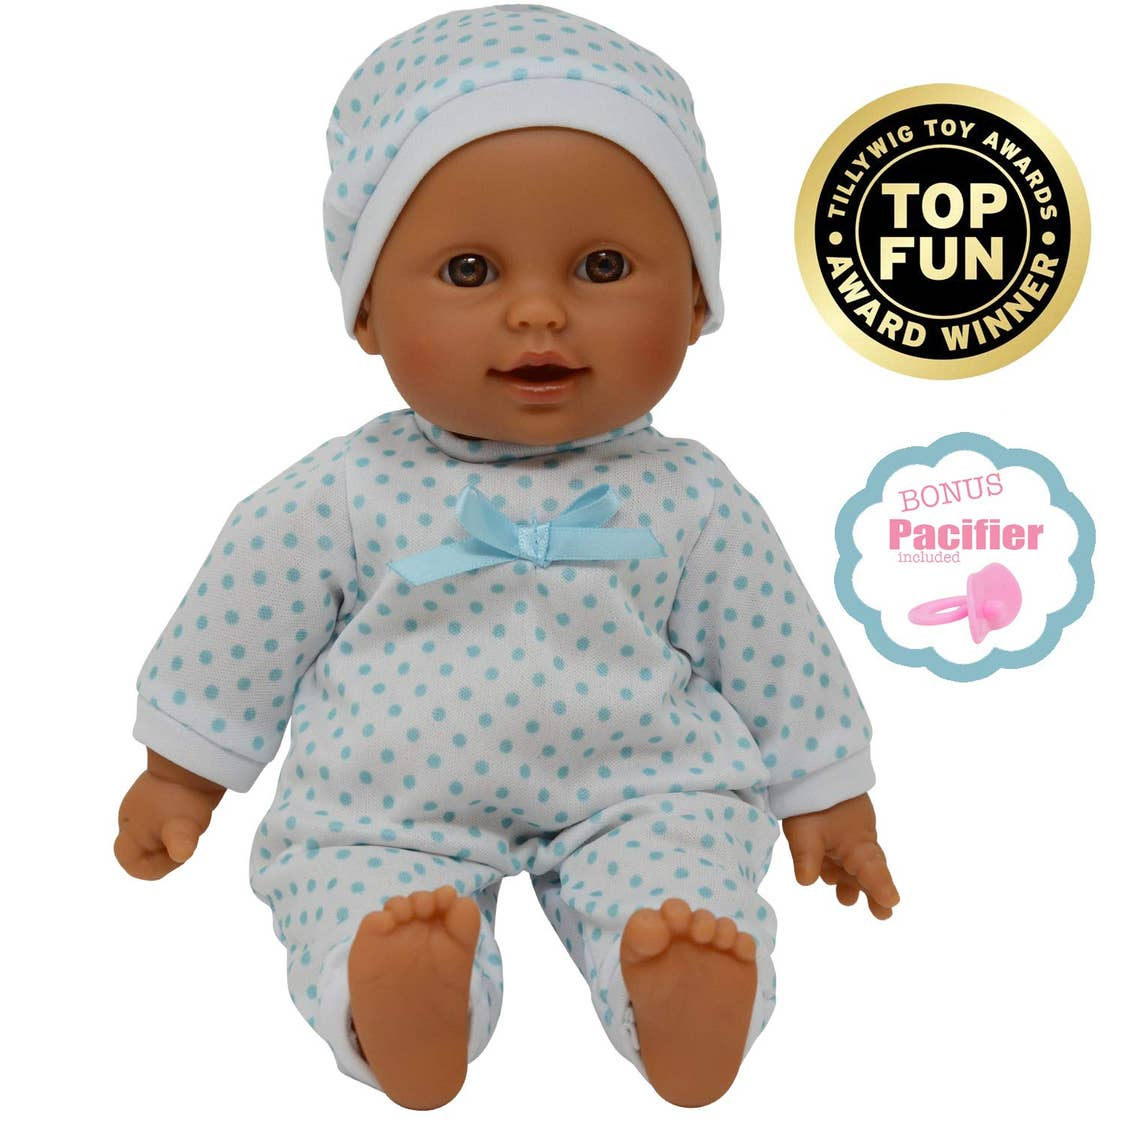 11 Inch Baby Doll Teal Polka Dot